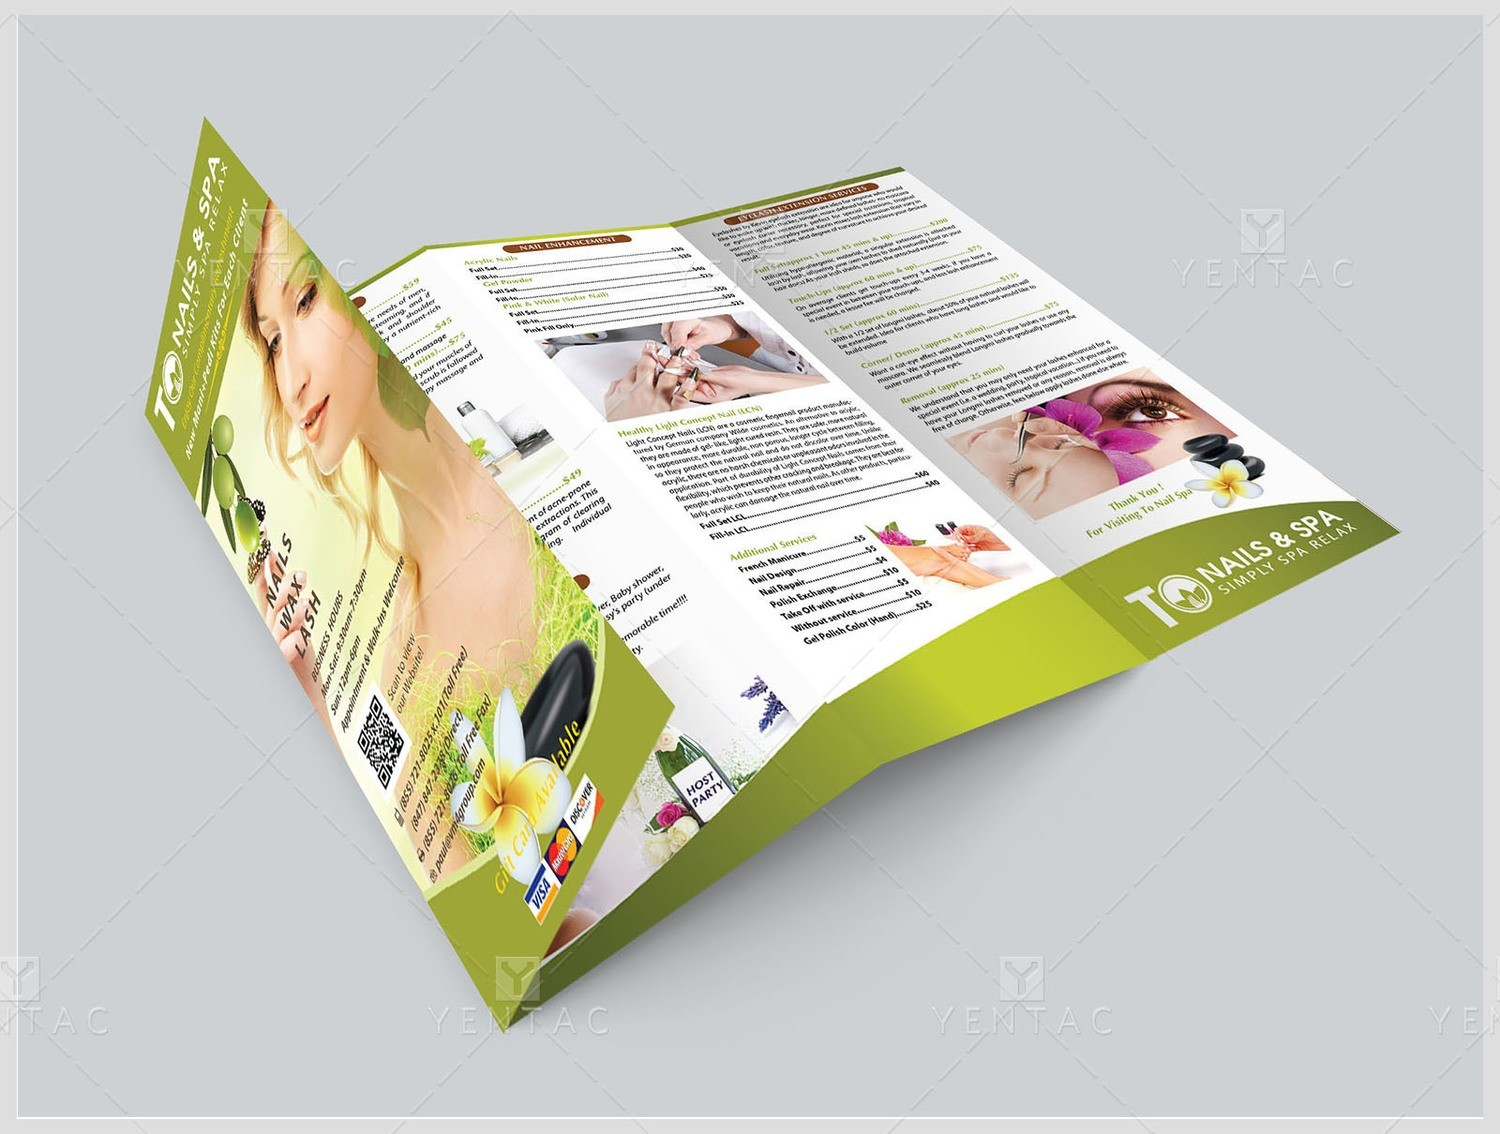 Menu-Take-Out - 8.5x14 with Four Fold (Accordion Fold) TO Brand Franchise ClientID #3011 Salon